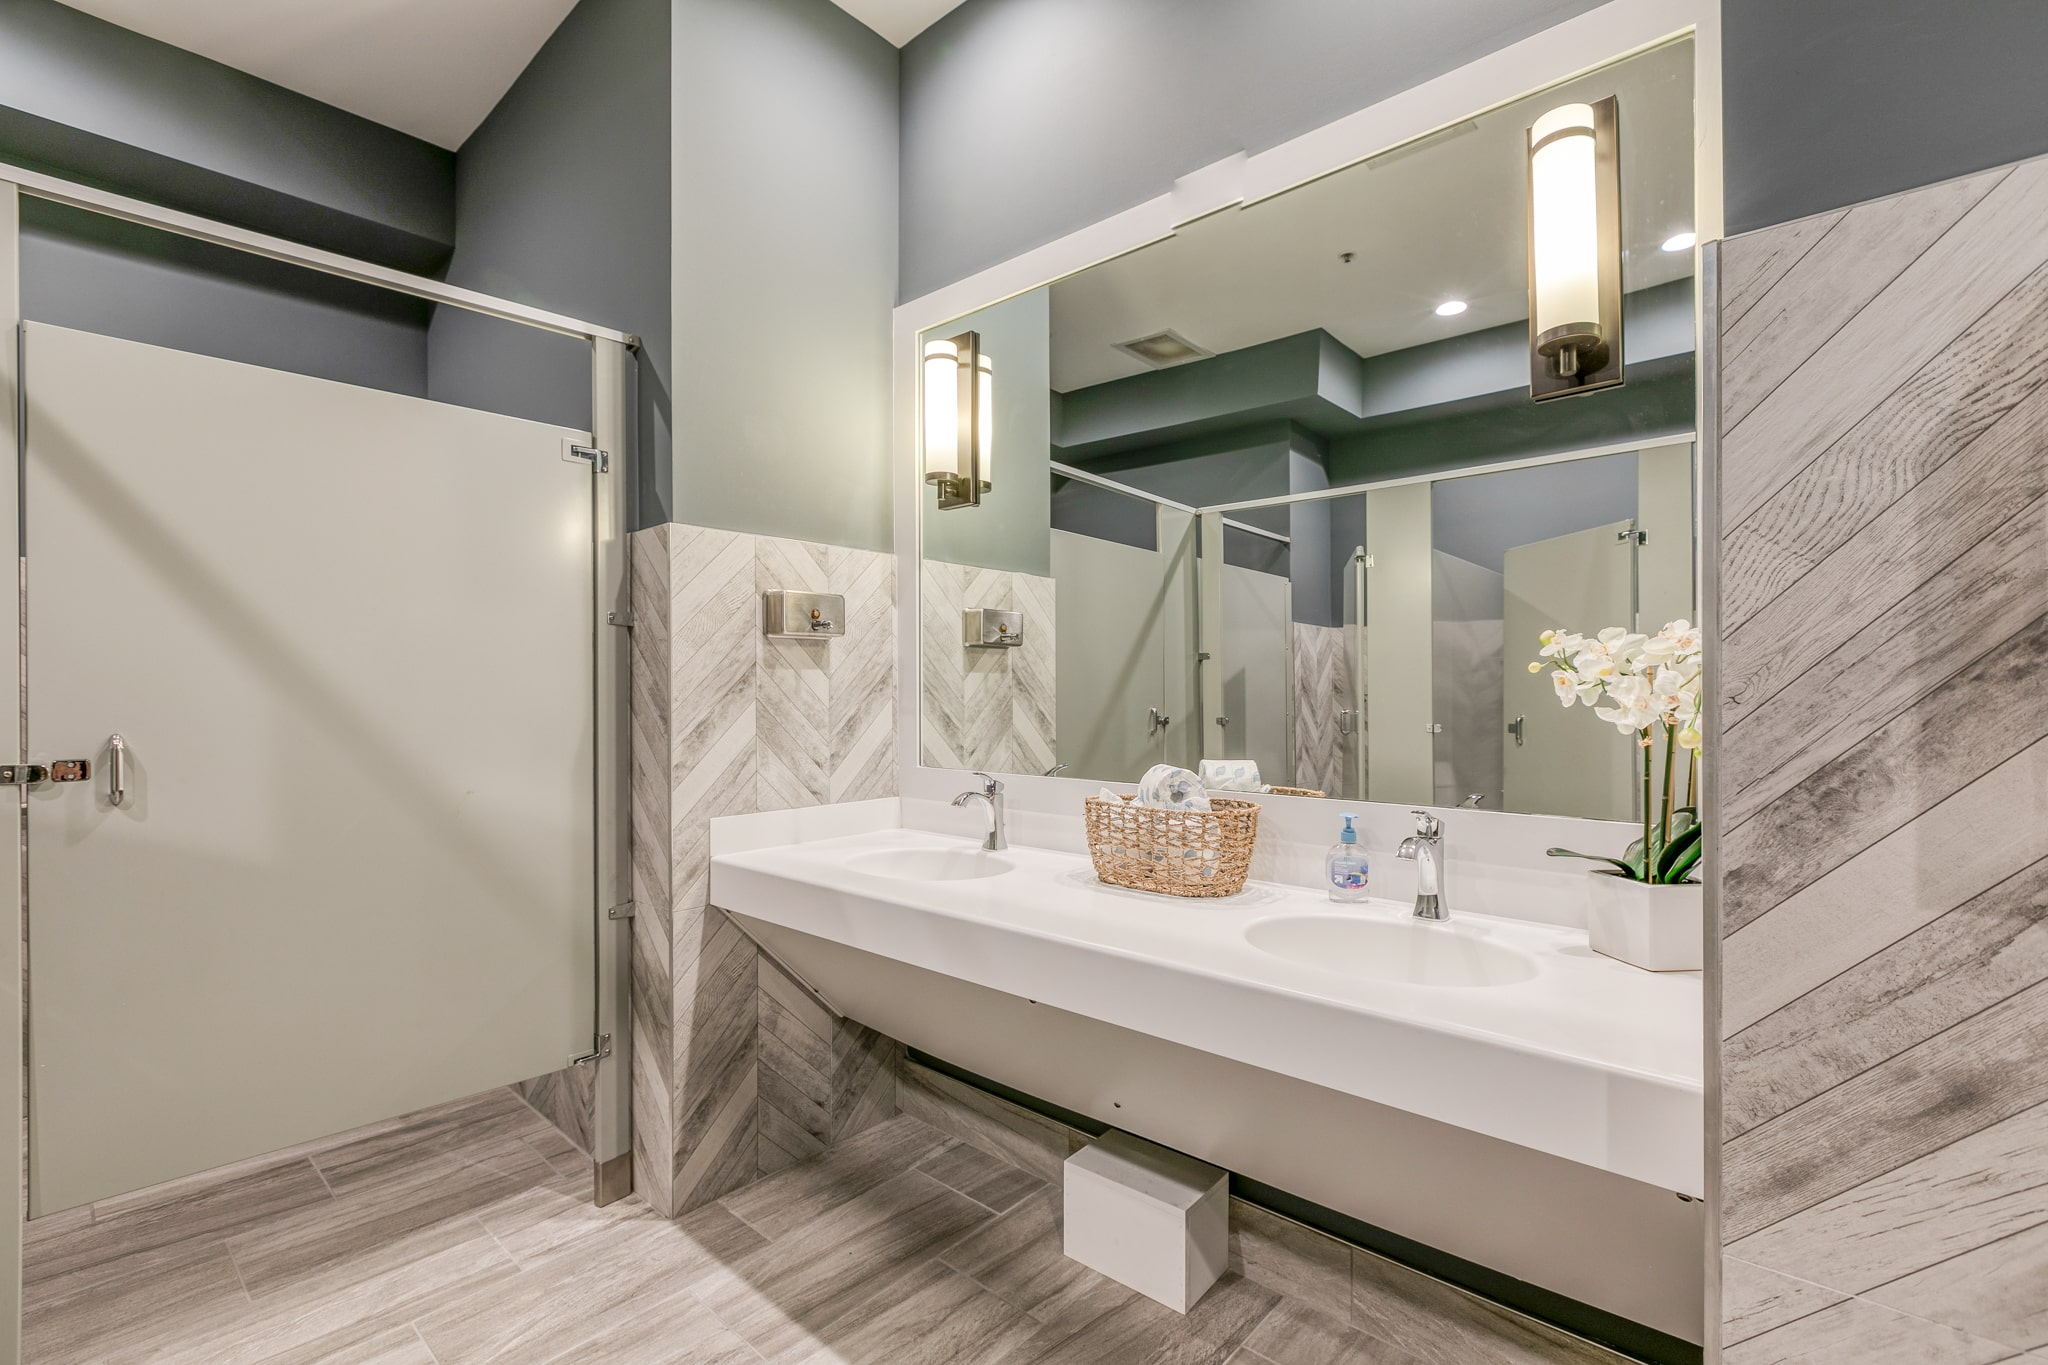 Image of a bathroom inside the Bay Bride Cove Community Clubhouse